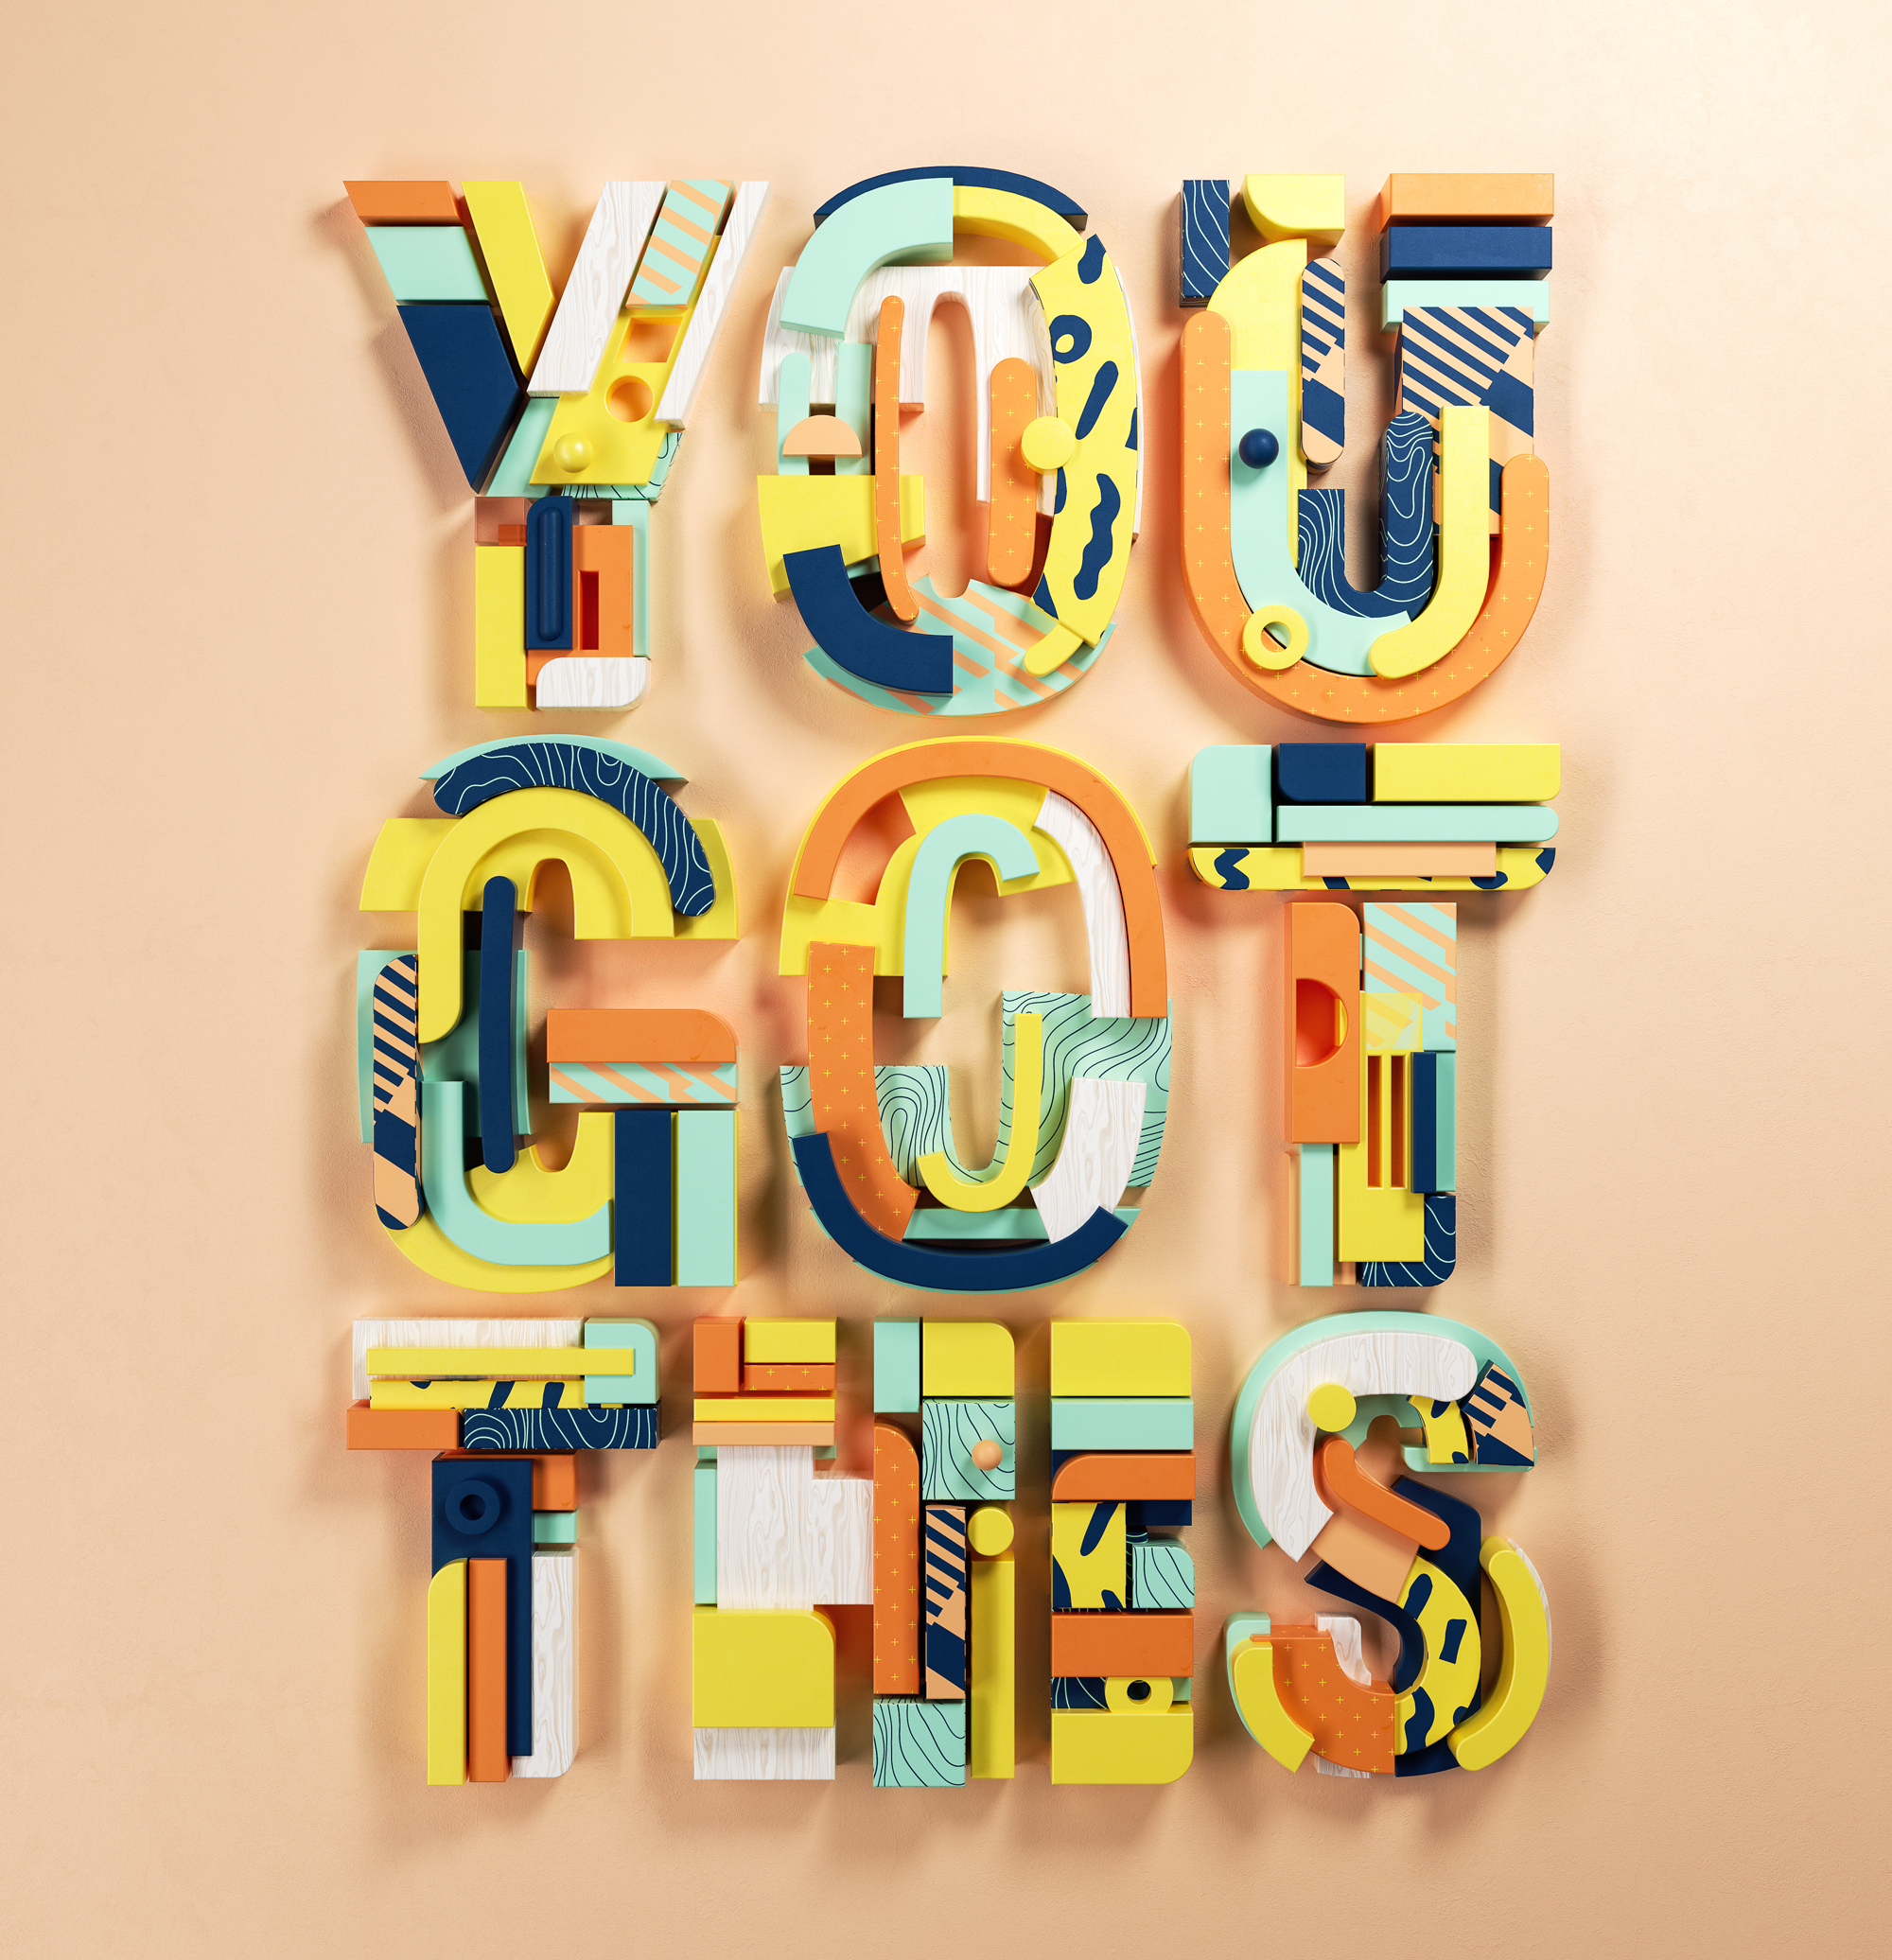 YouGotThis_Typography_MediumRes_Square.jpg